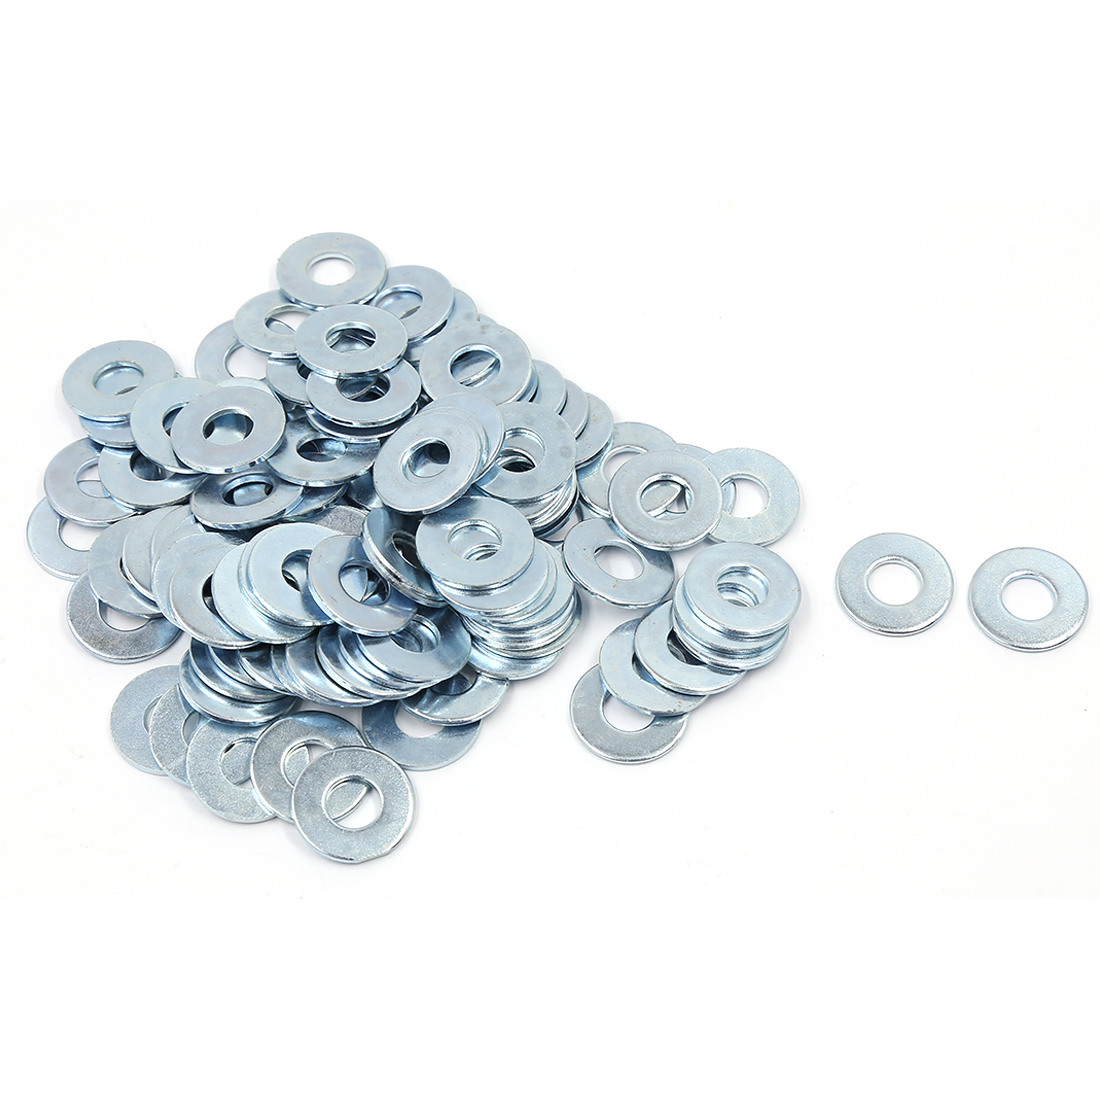 100 Pcs M10x24mmx1.7mm Stainless Steel Metric Round Flat Washer for Bolt Screw